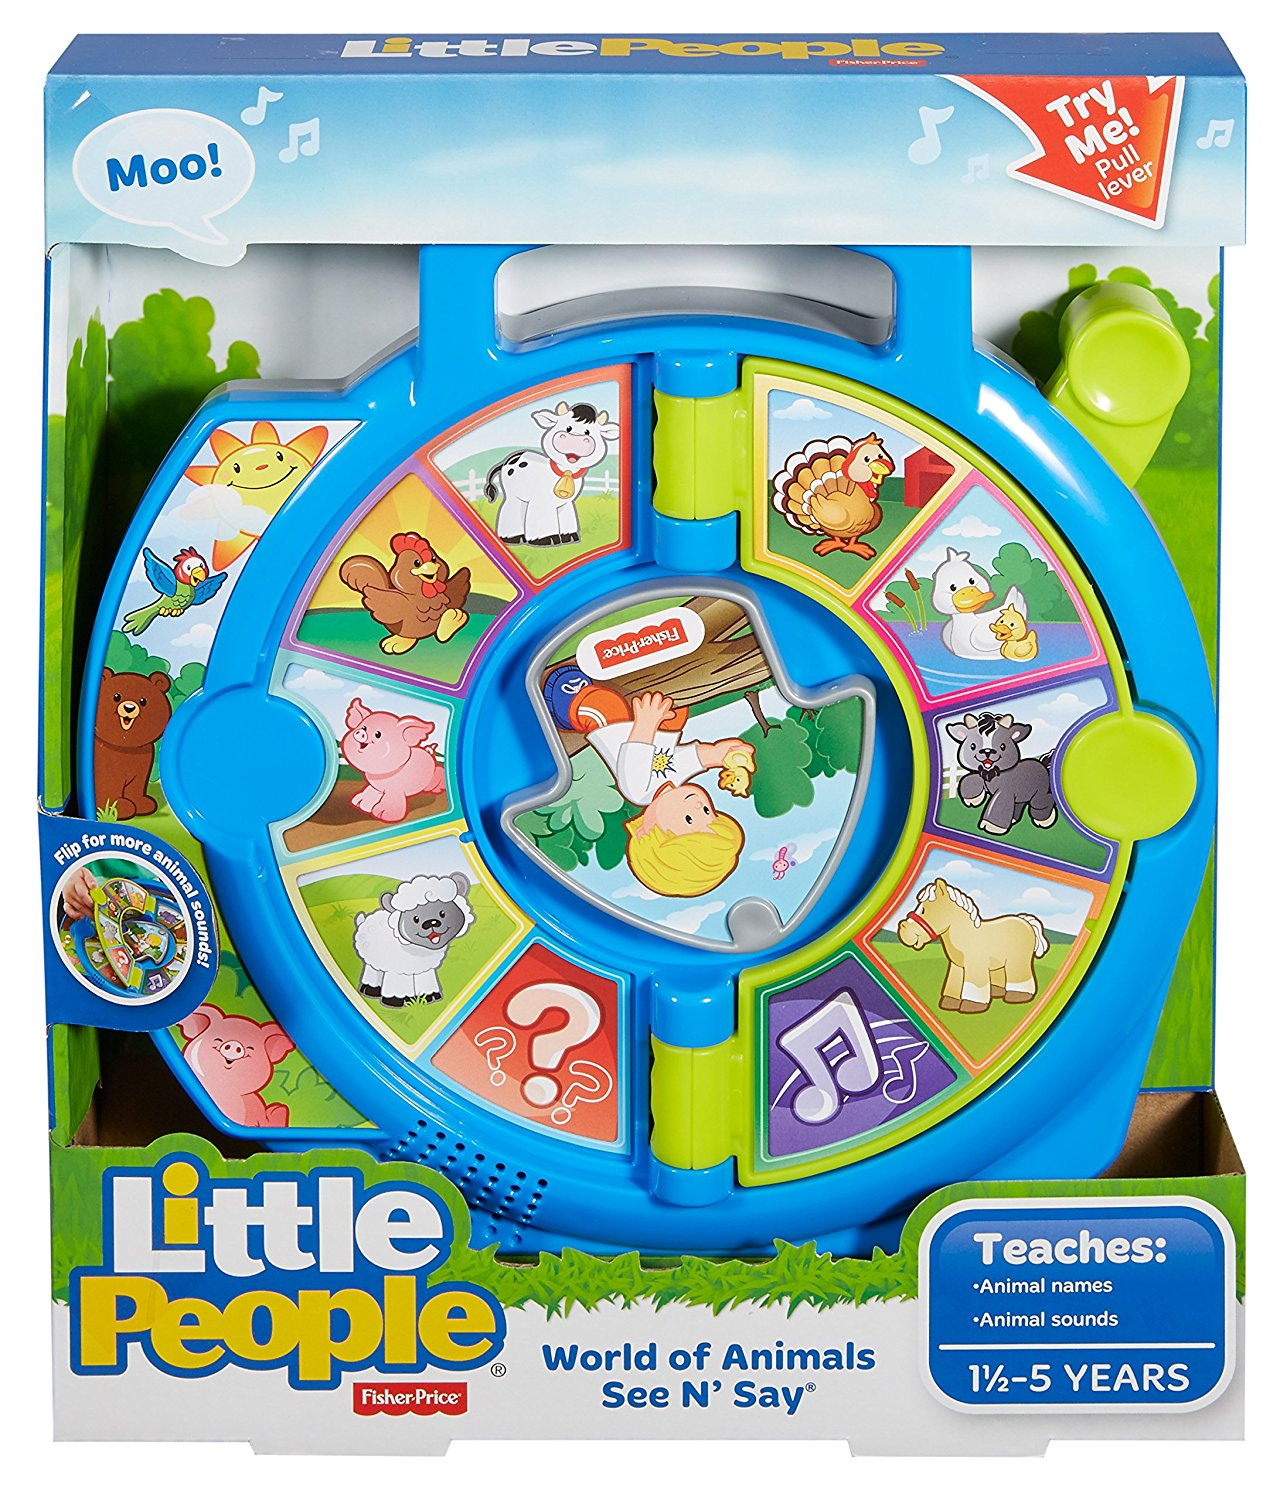 World Of Animals See /'N Say New Toy Toy Little People Fisher Price